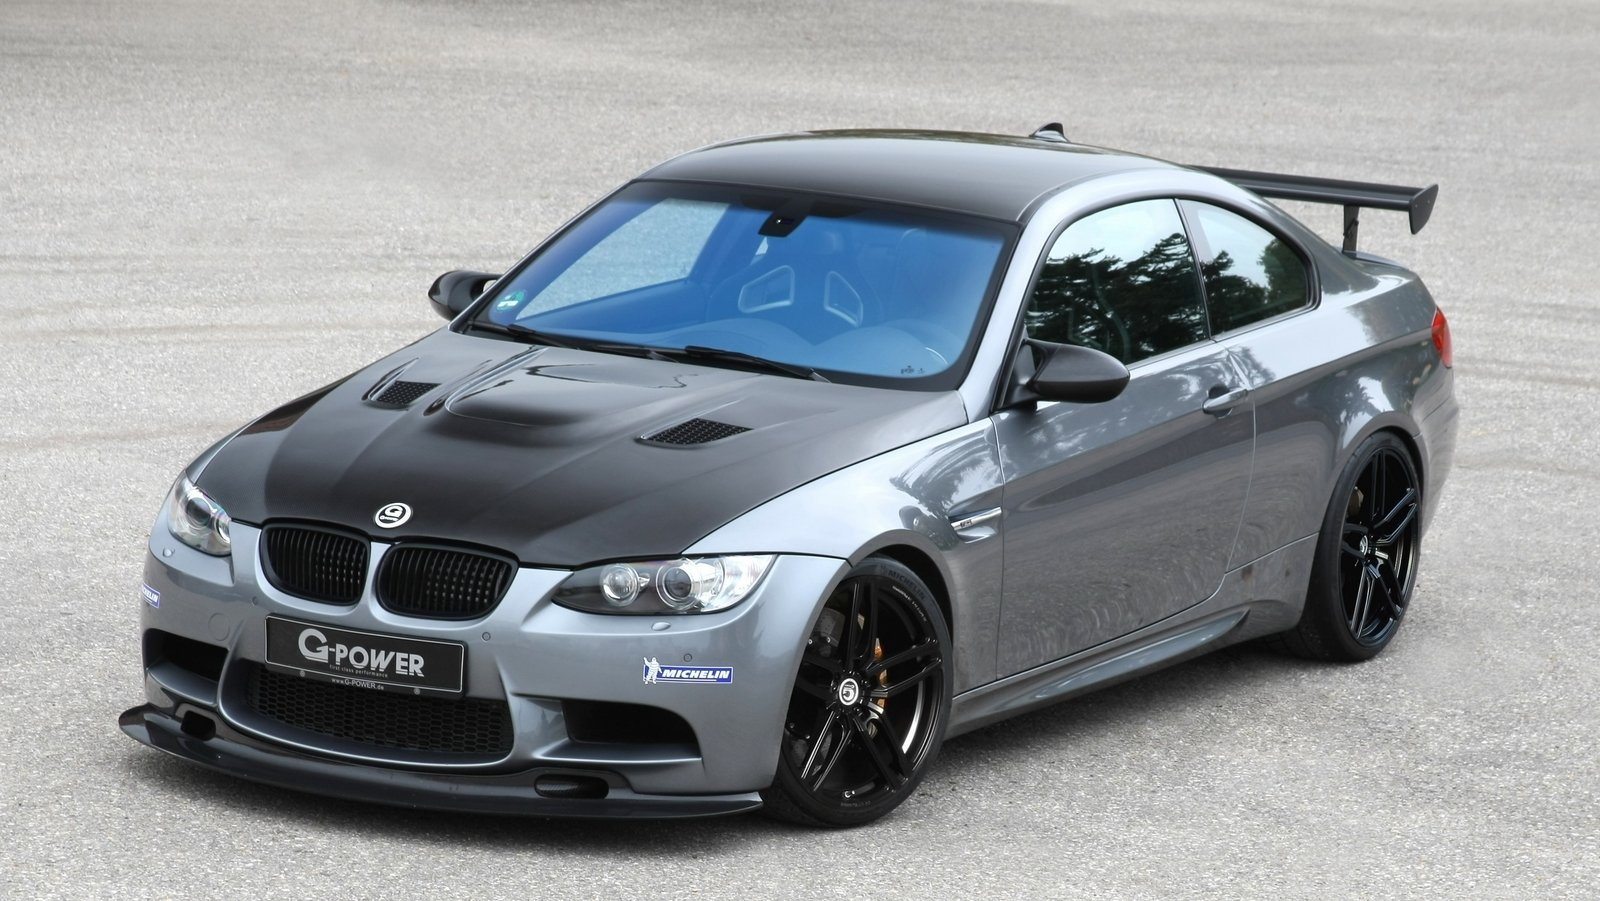 2016 bmw m3 rs e9x by g power review top speed. Black Bedroom Furniture Sets. Home Design Ideas